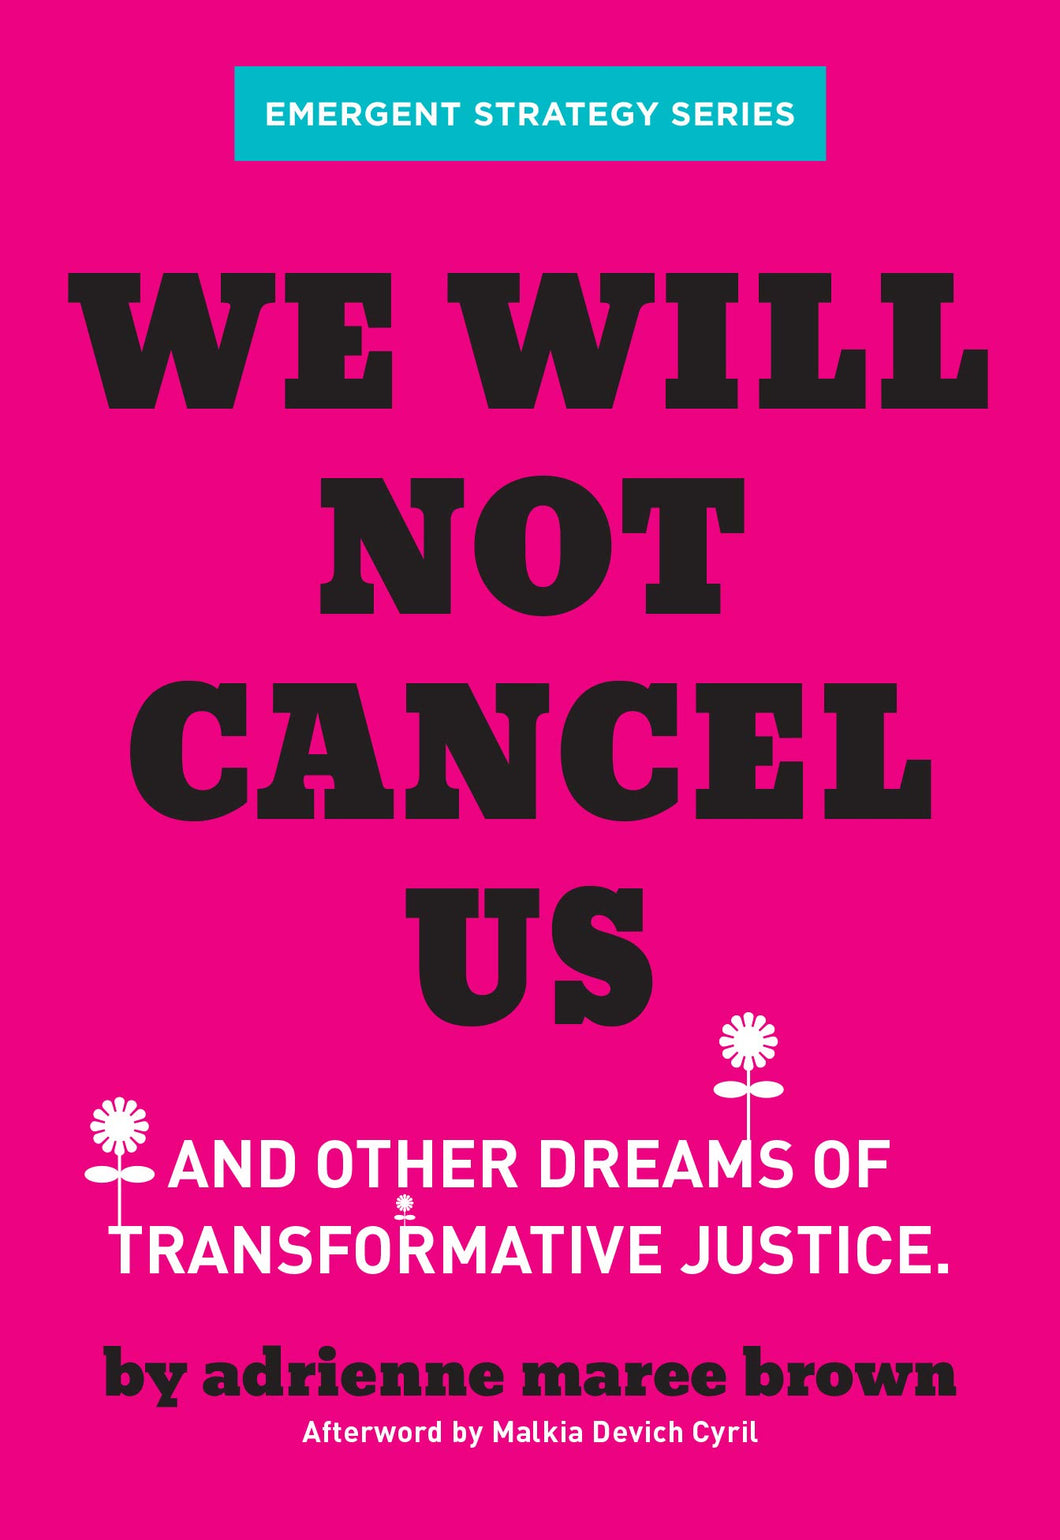 We Will Not Cancel Us: And Other Dreams of Transformative Justice (Emergent Strategy Series) by Adrienne Maree Brown